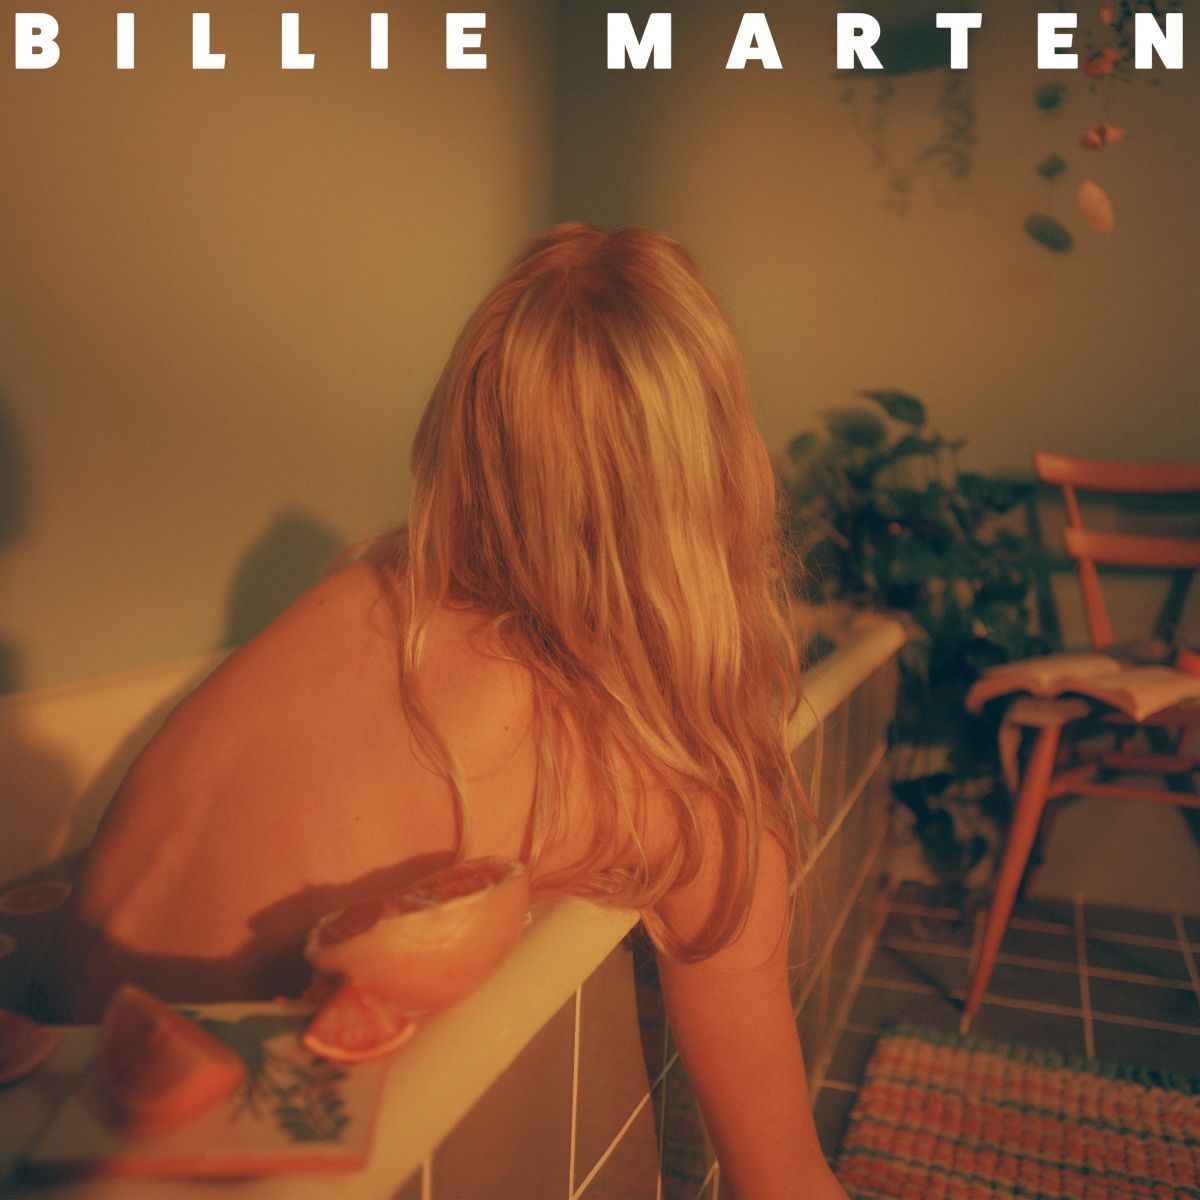 Feeding Seahorses by Hand - Billie Marten